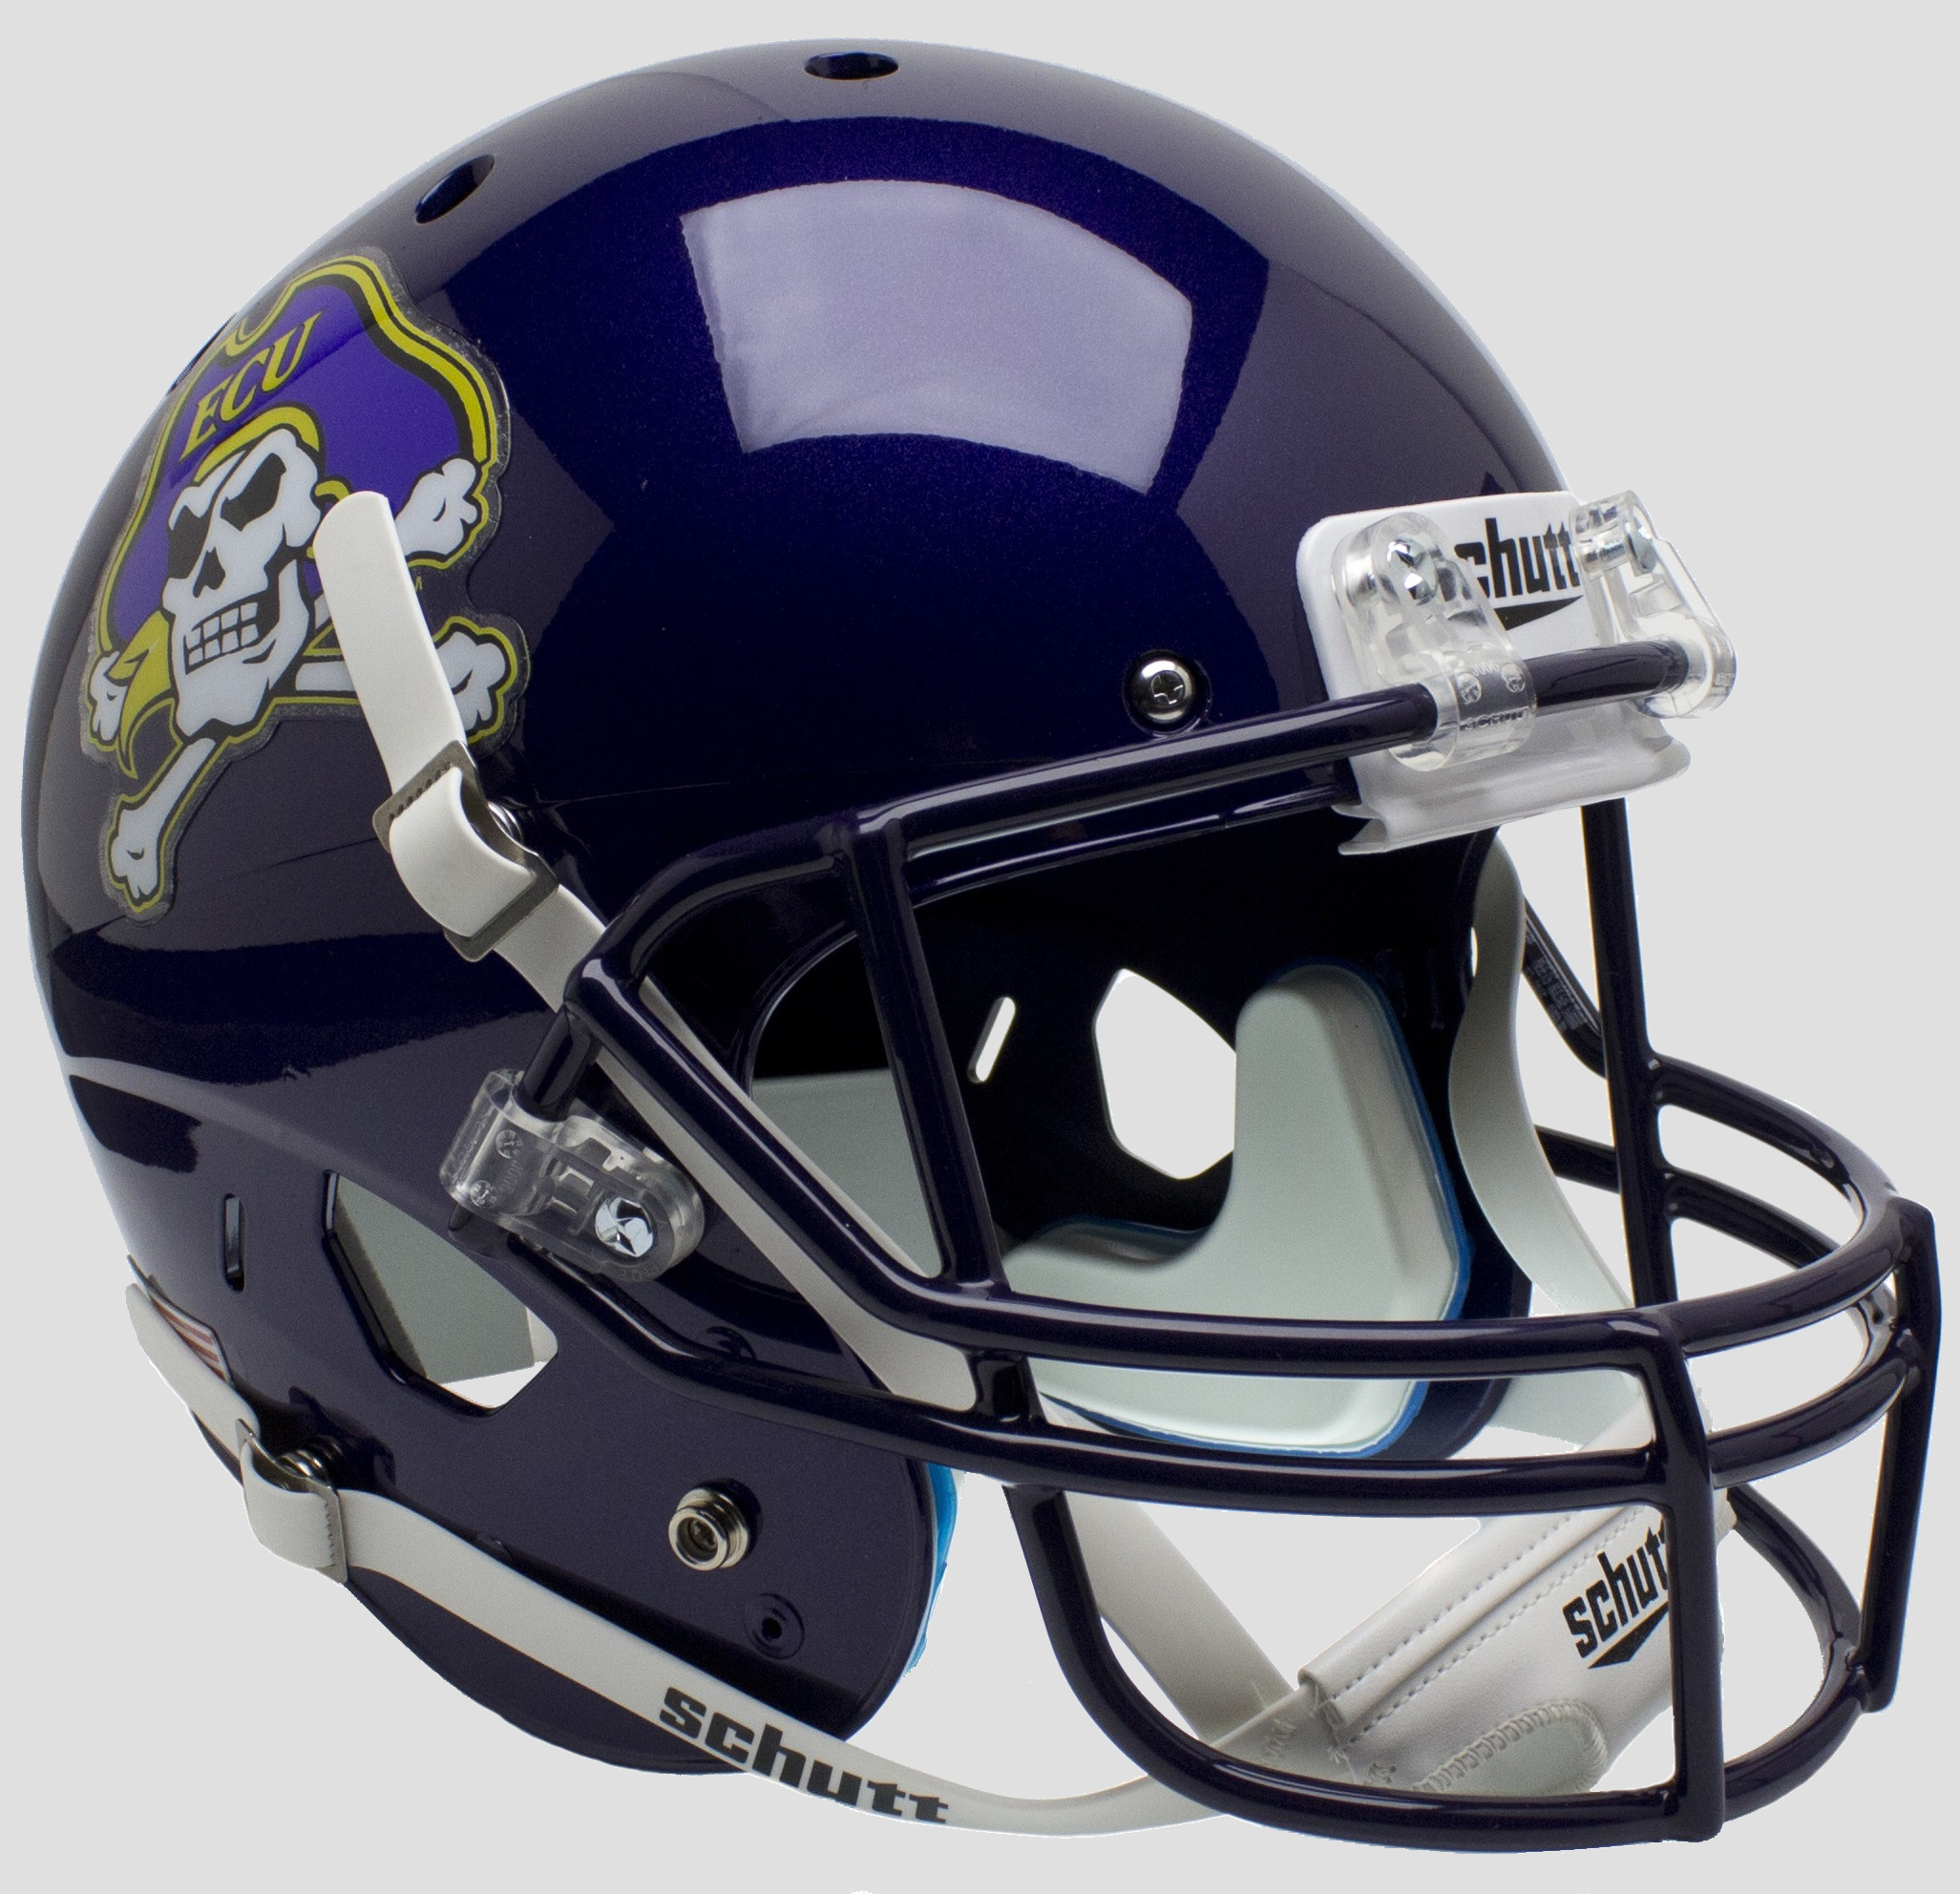 East Carolina Pirates Full XP Replica Football Helmet Schutt <B>Black Mask</B>